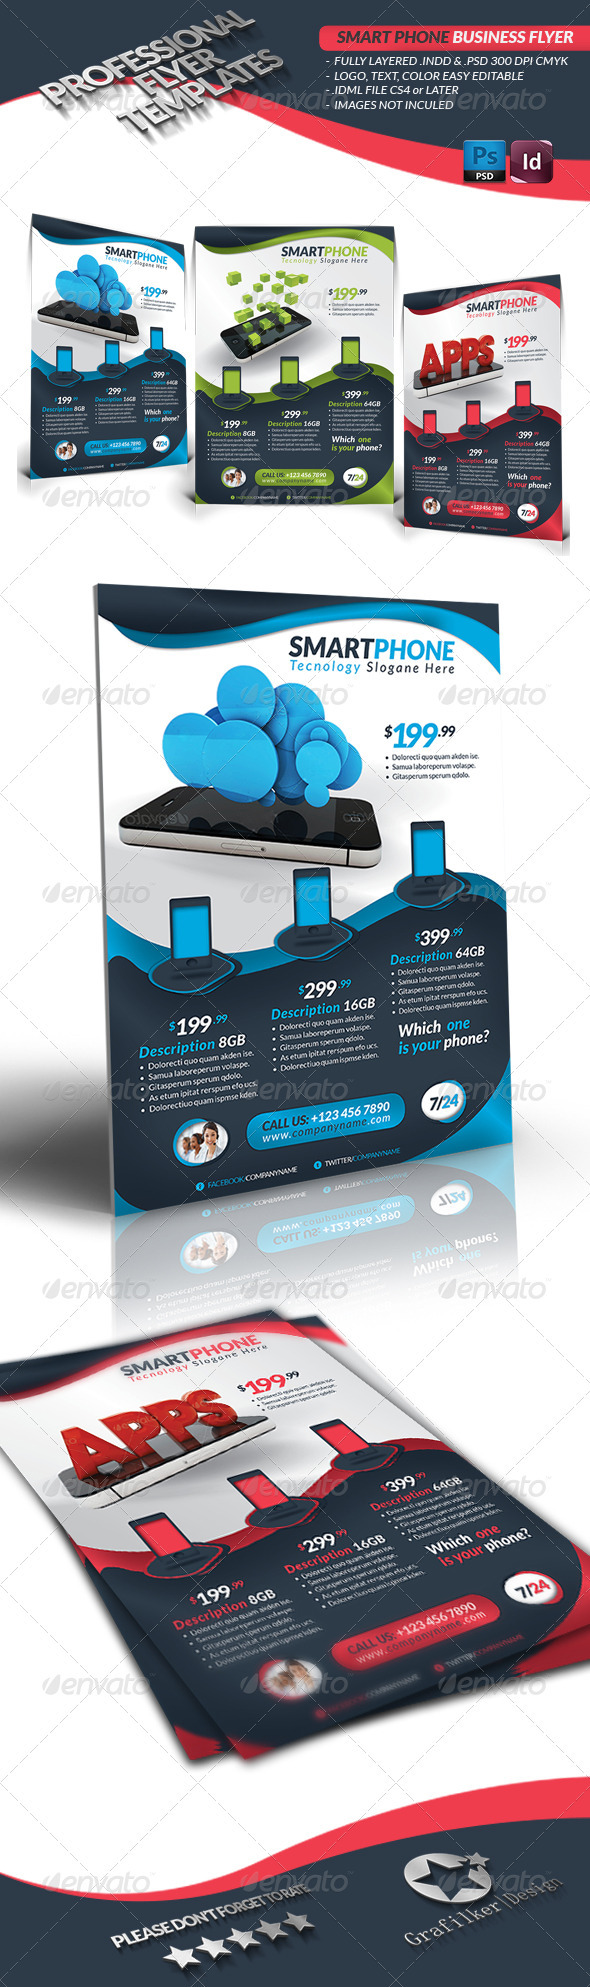 GraphicRiver Smart Phone Business Flyer 3533445